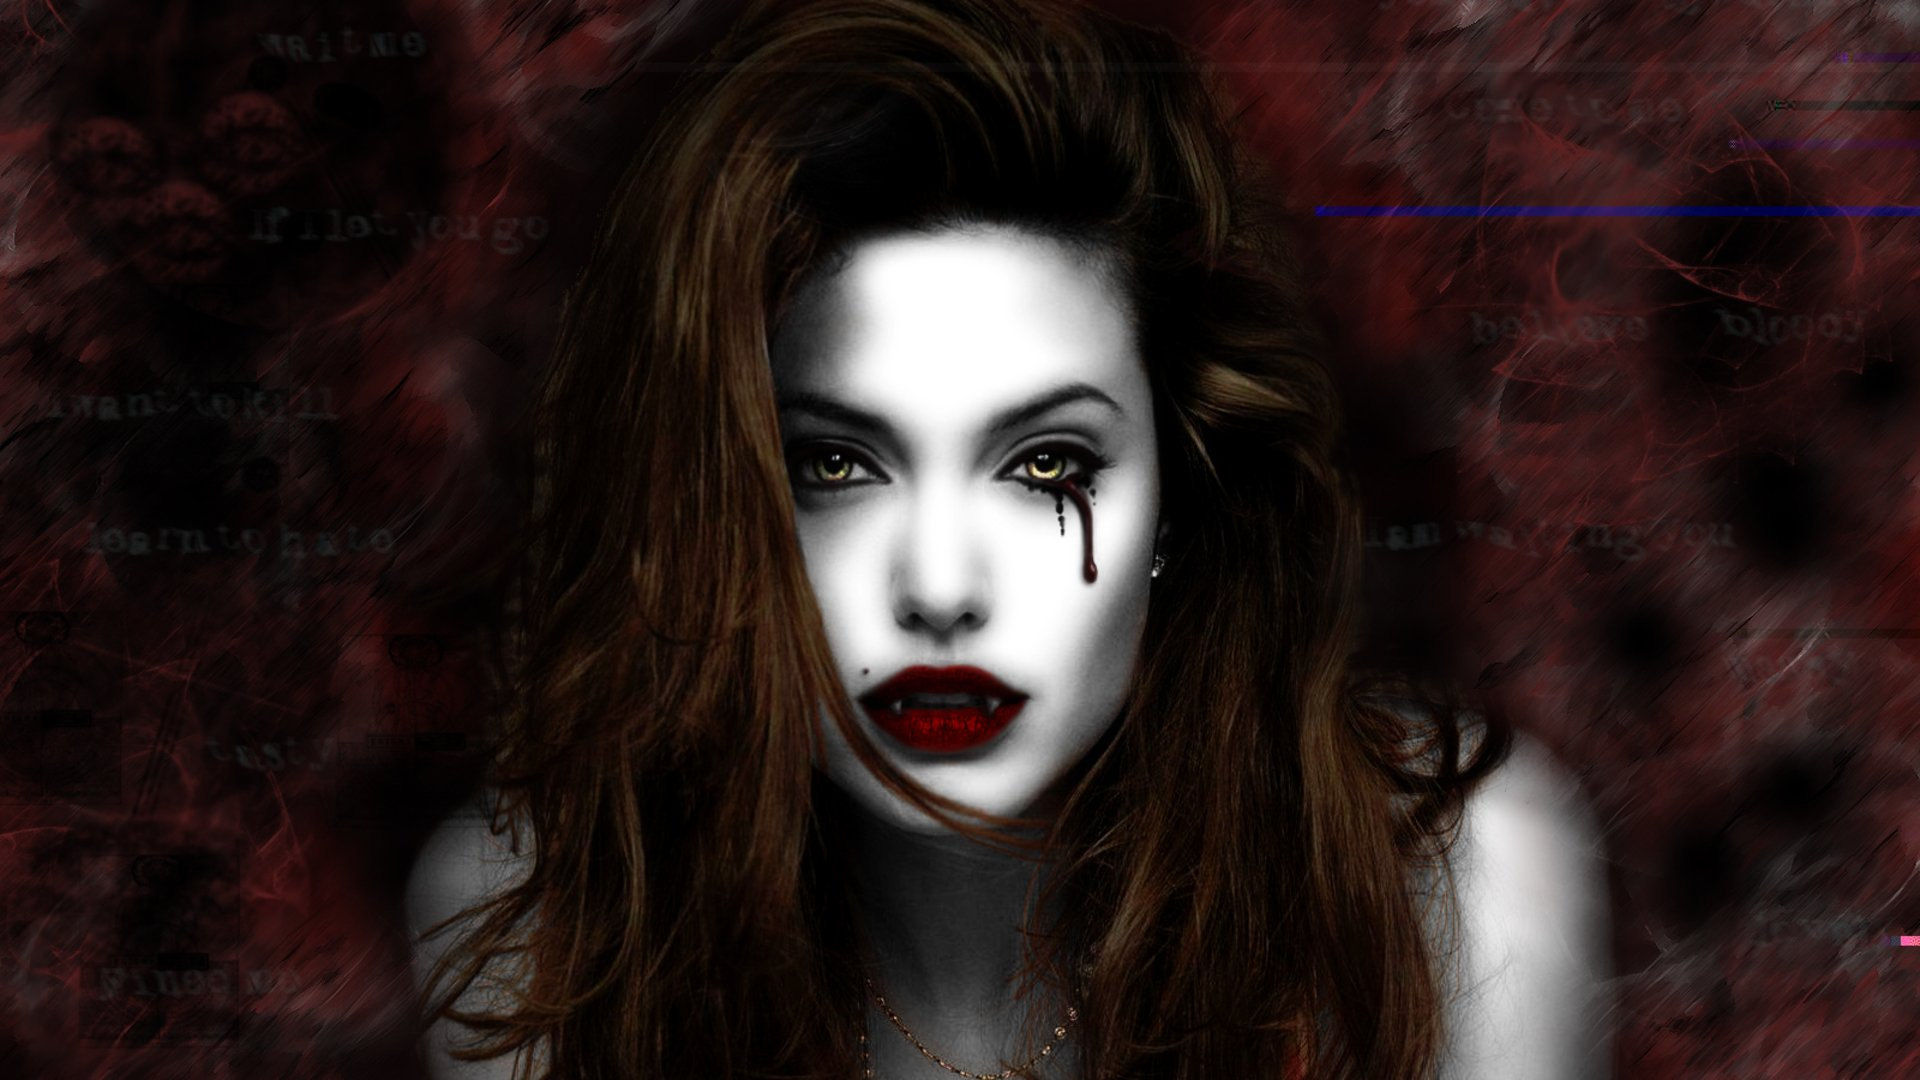 210 vampire hd wallpapers | background images - wallpaper abyss